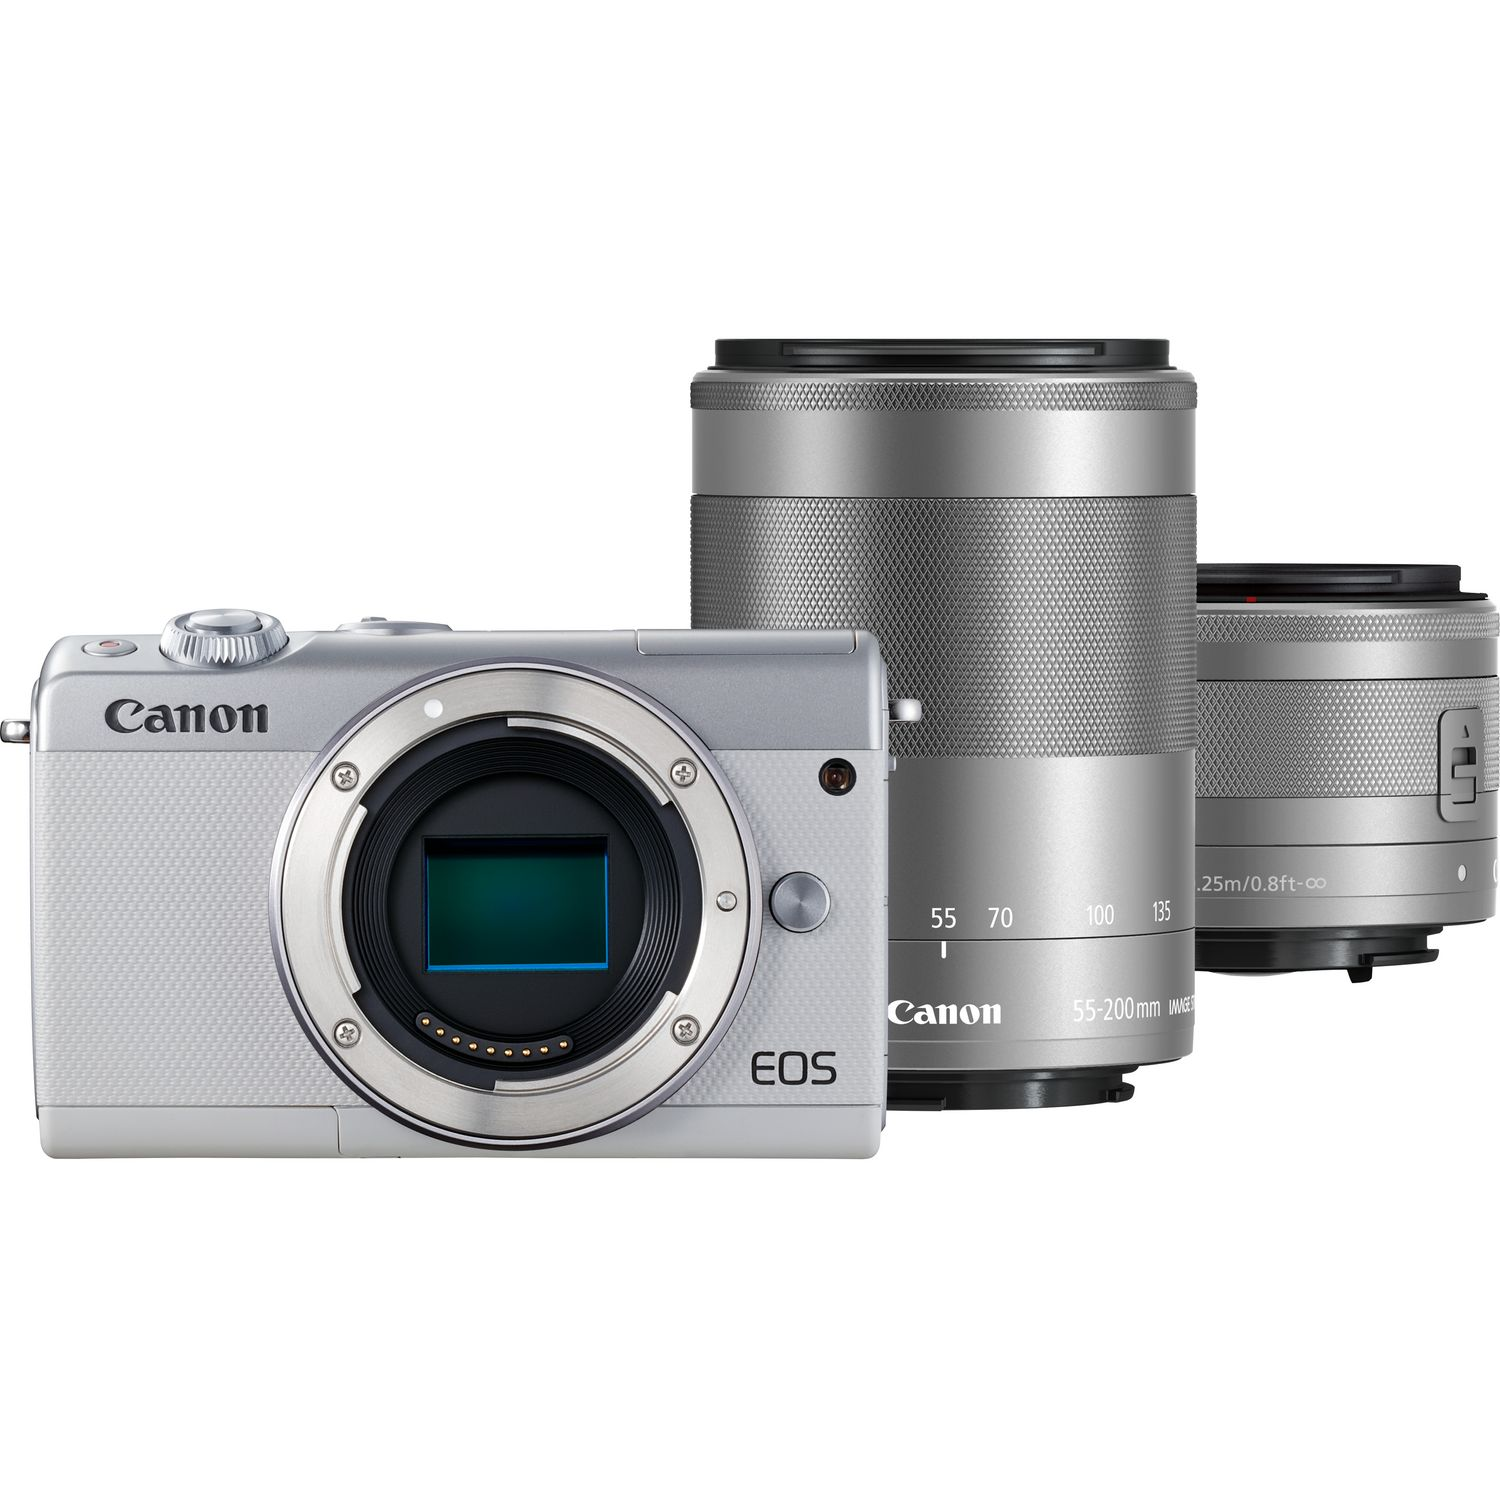 Buy Canon Eos M100 White Ef M 15 45mm Is Stm Lens Silver 55 28mm F 35 Macro Magnify Image